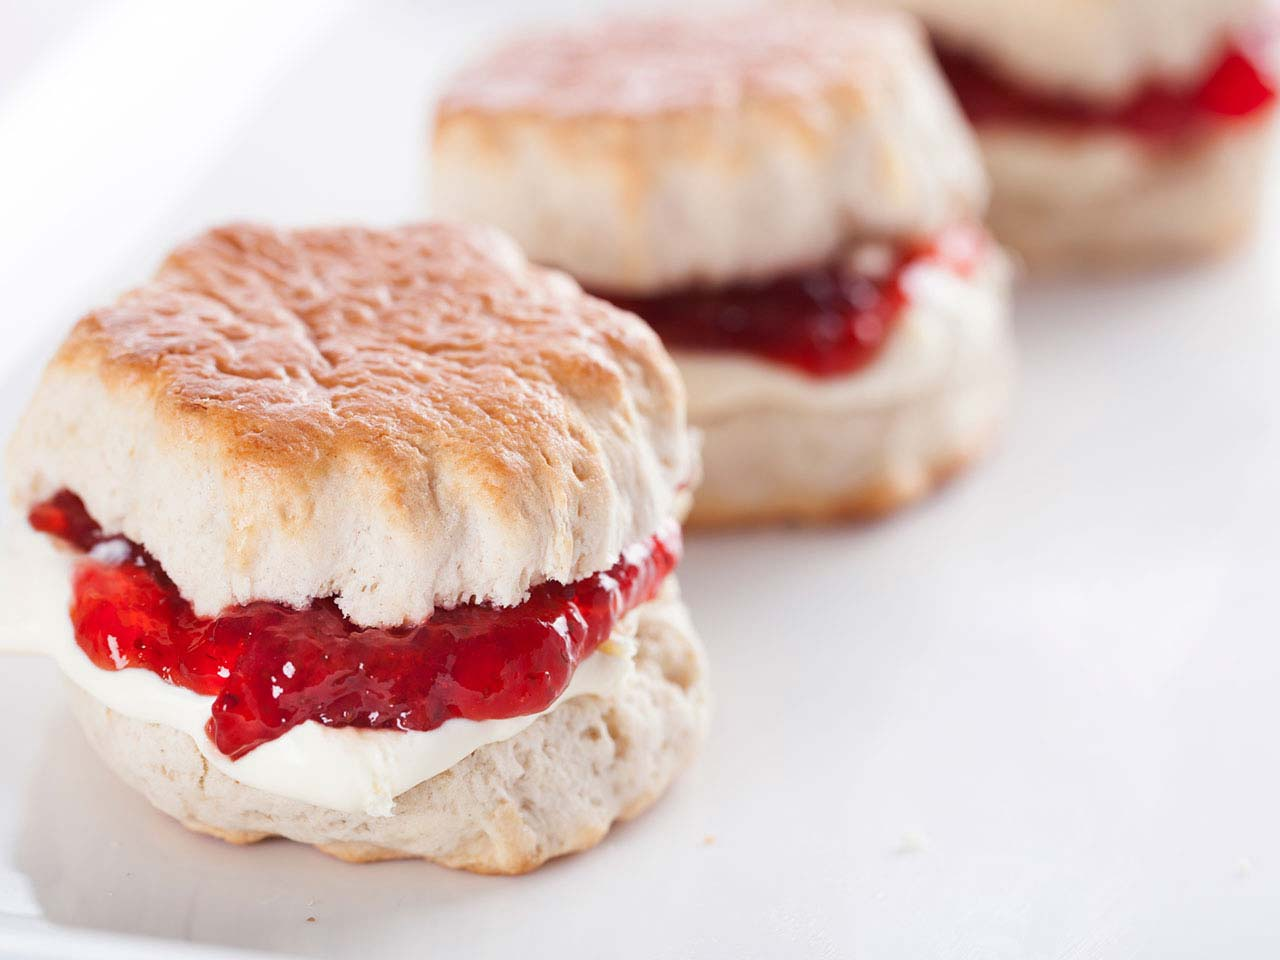 Jam and cream scones